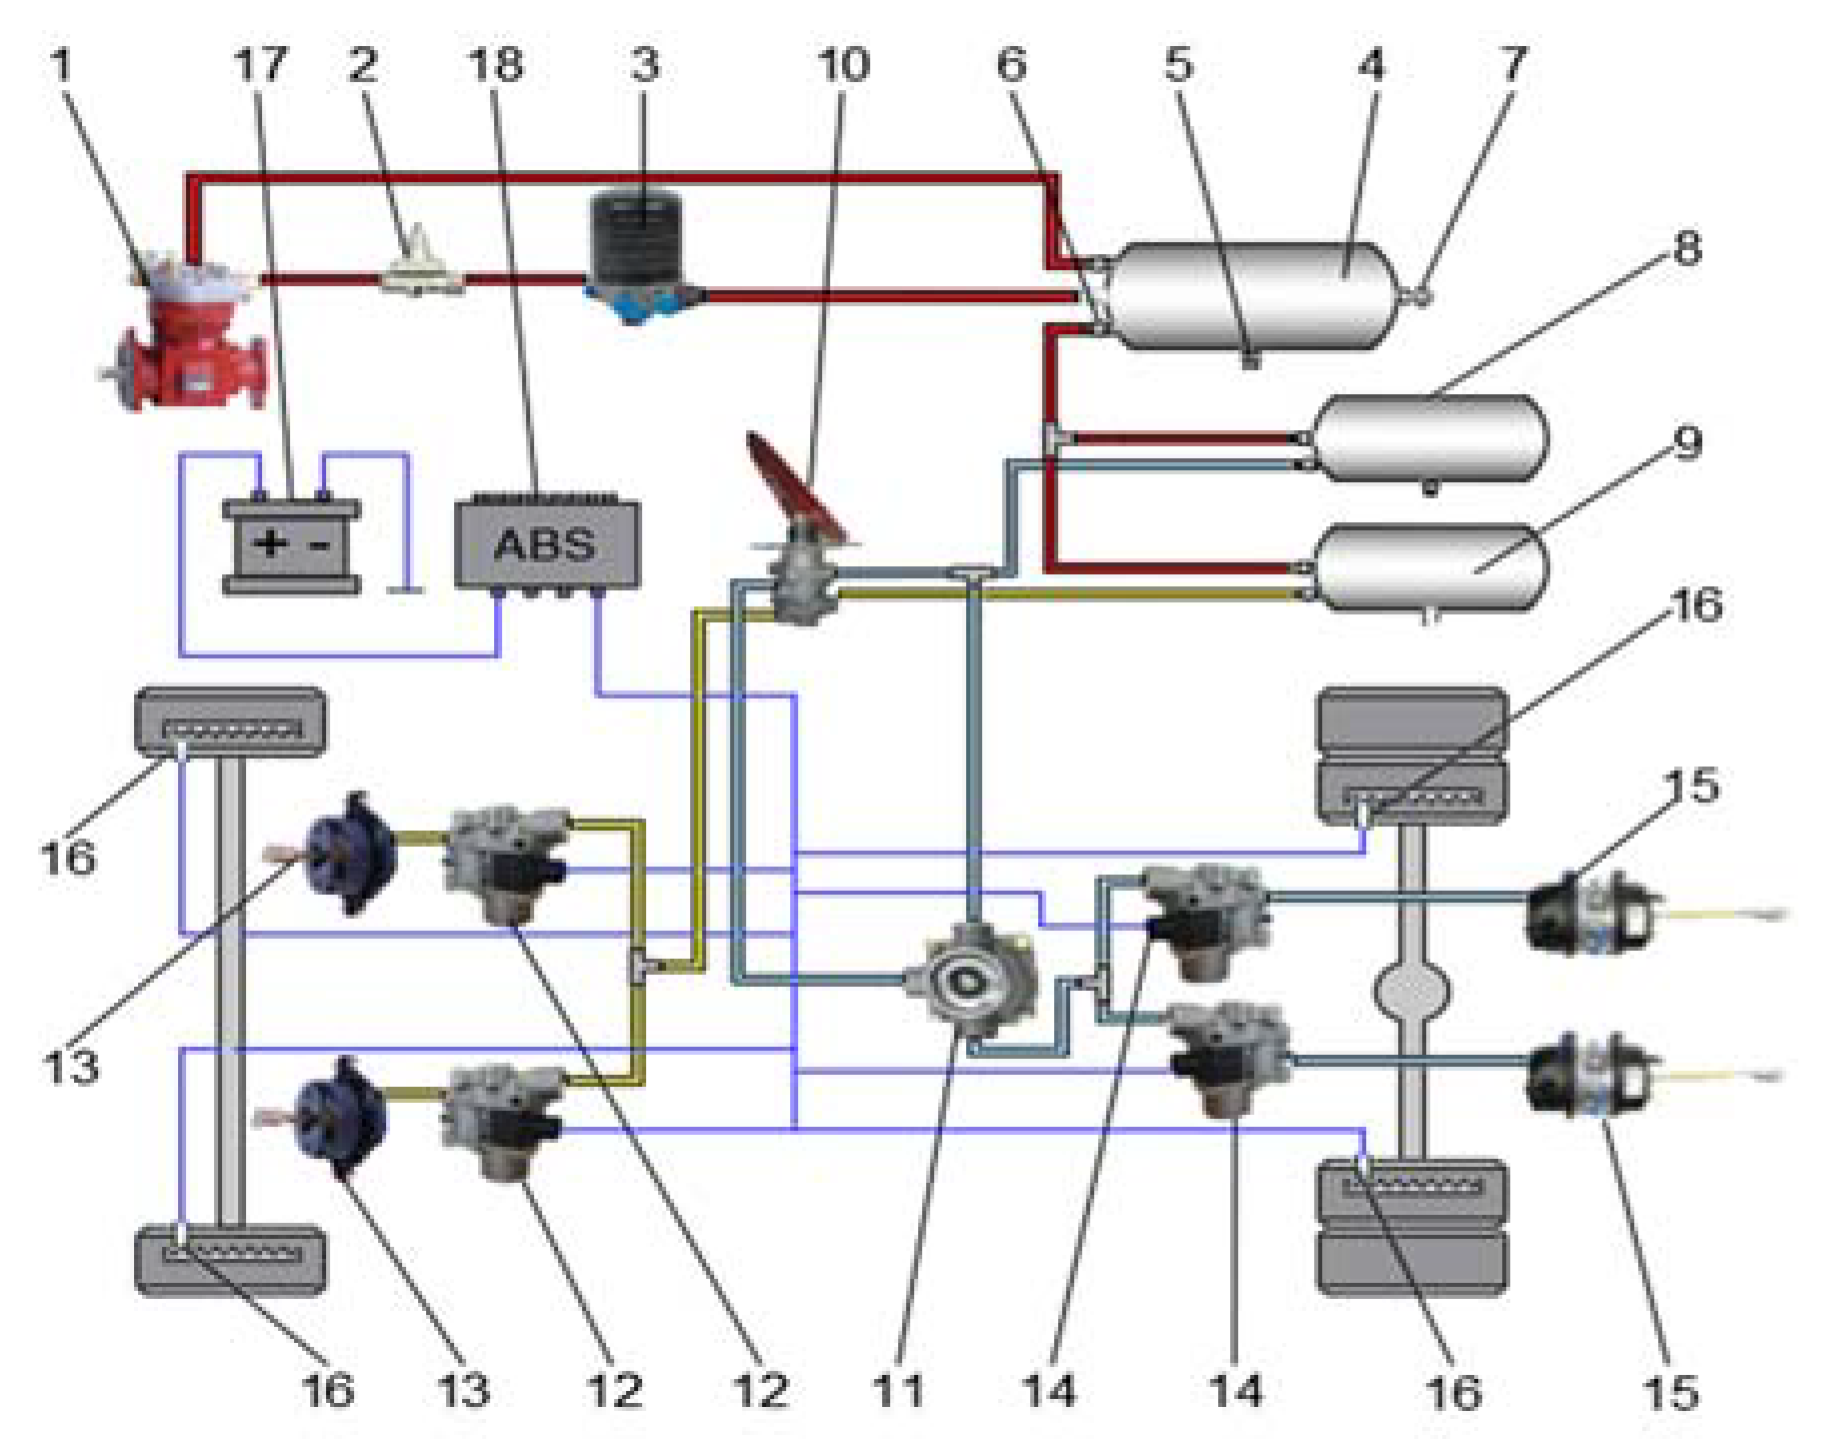 Electronics Free Full Text Pneumatic Abs Modeling And Failure Mode Analysis Of Electromagnetic And Control Valves For Commercial Vehicles Html